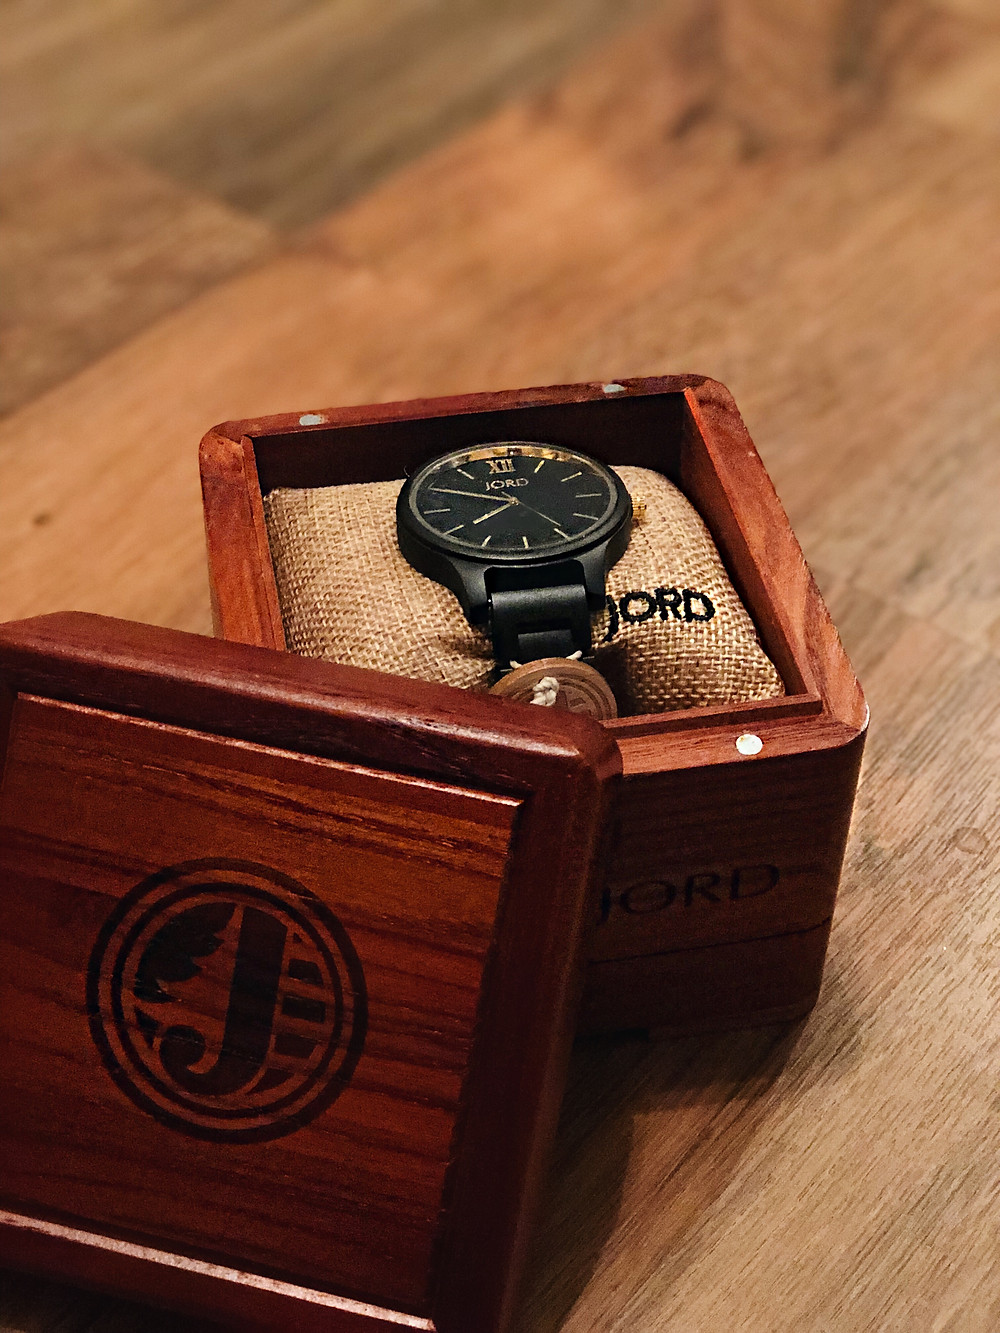 JORD watch, holiday, gift